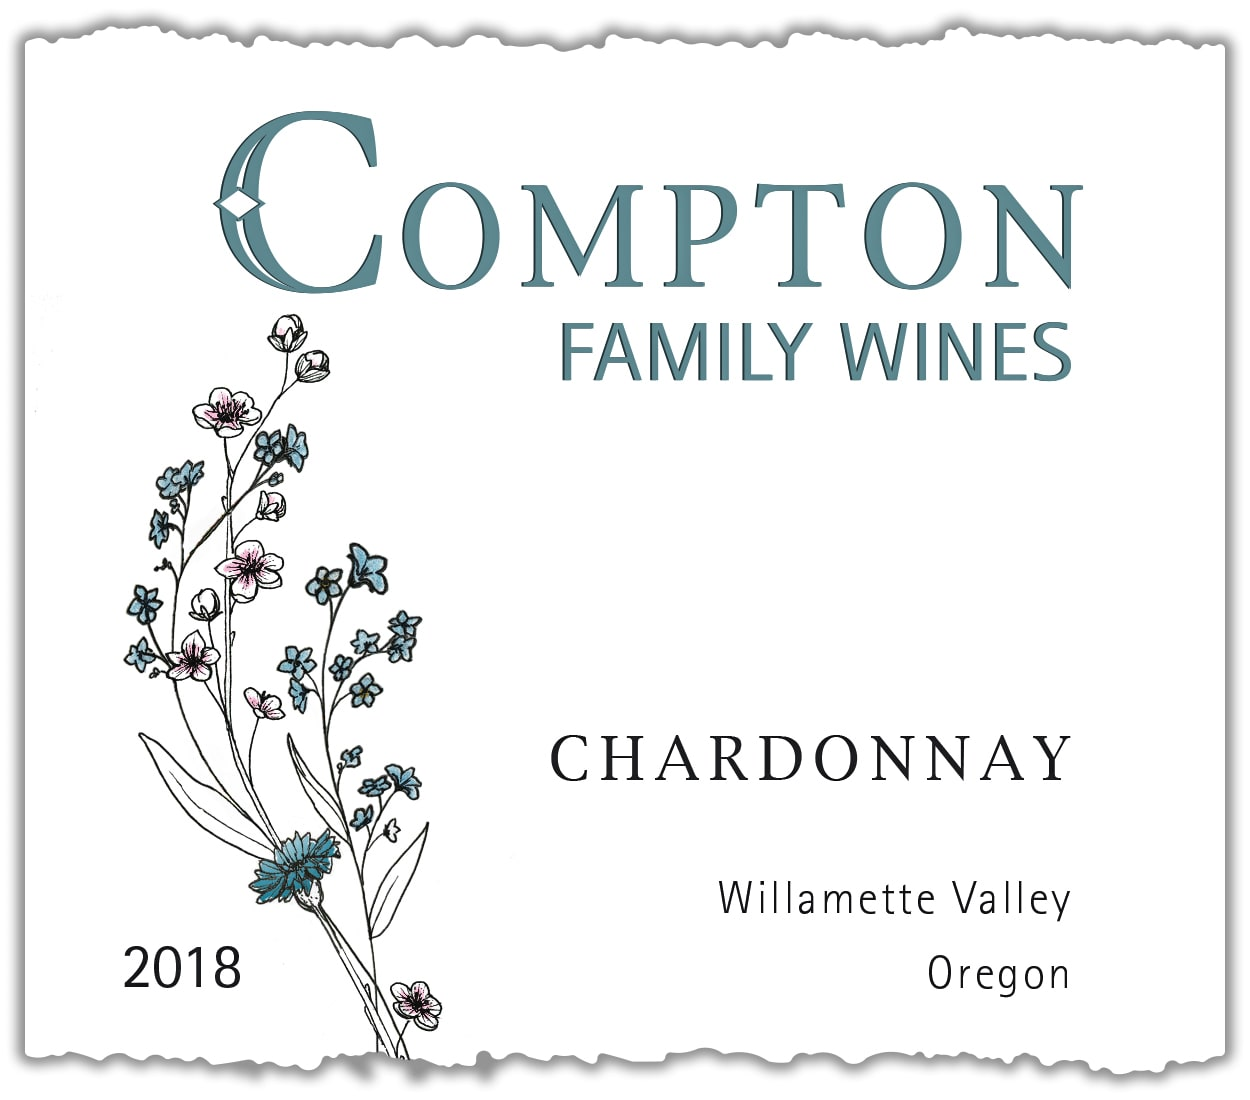 Compton Garden Series from Compton Family Wines